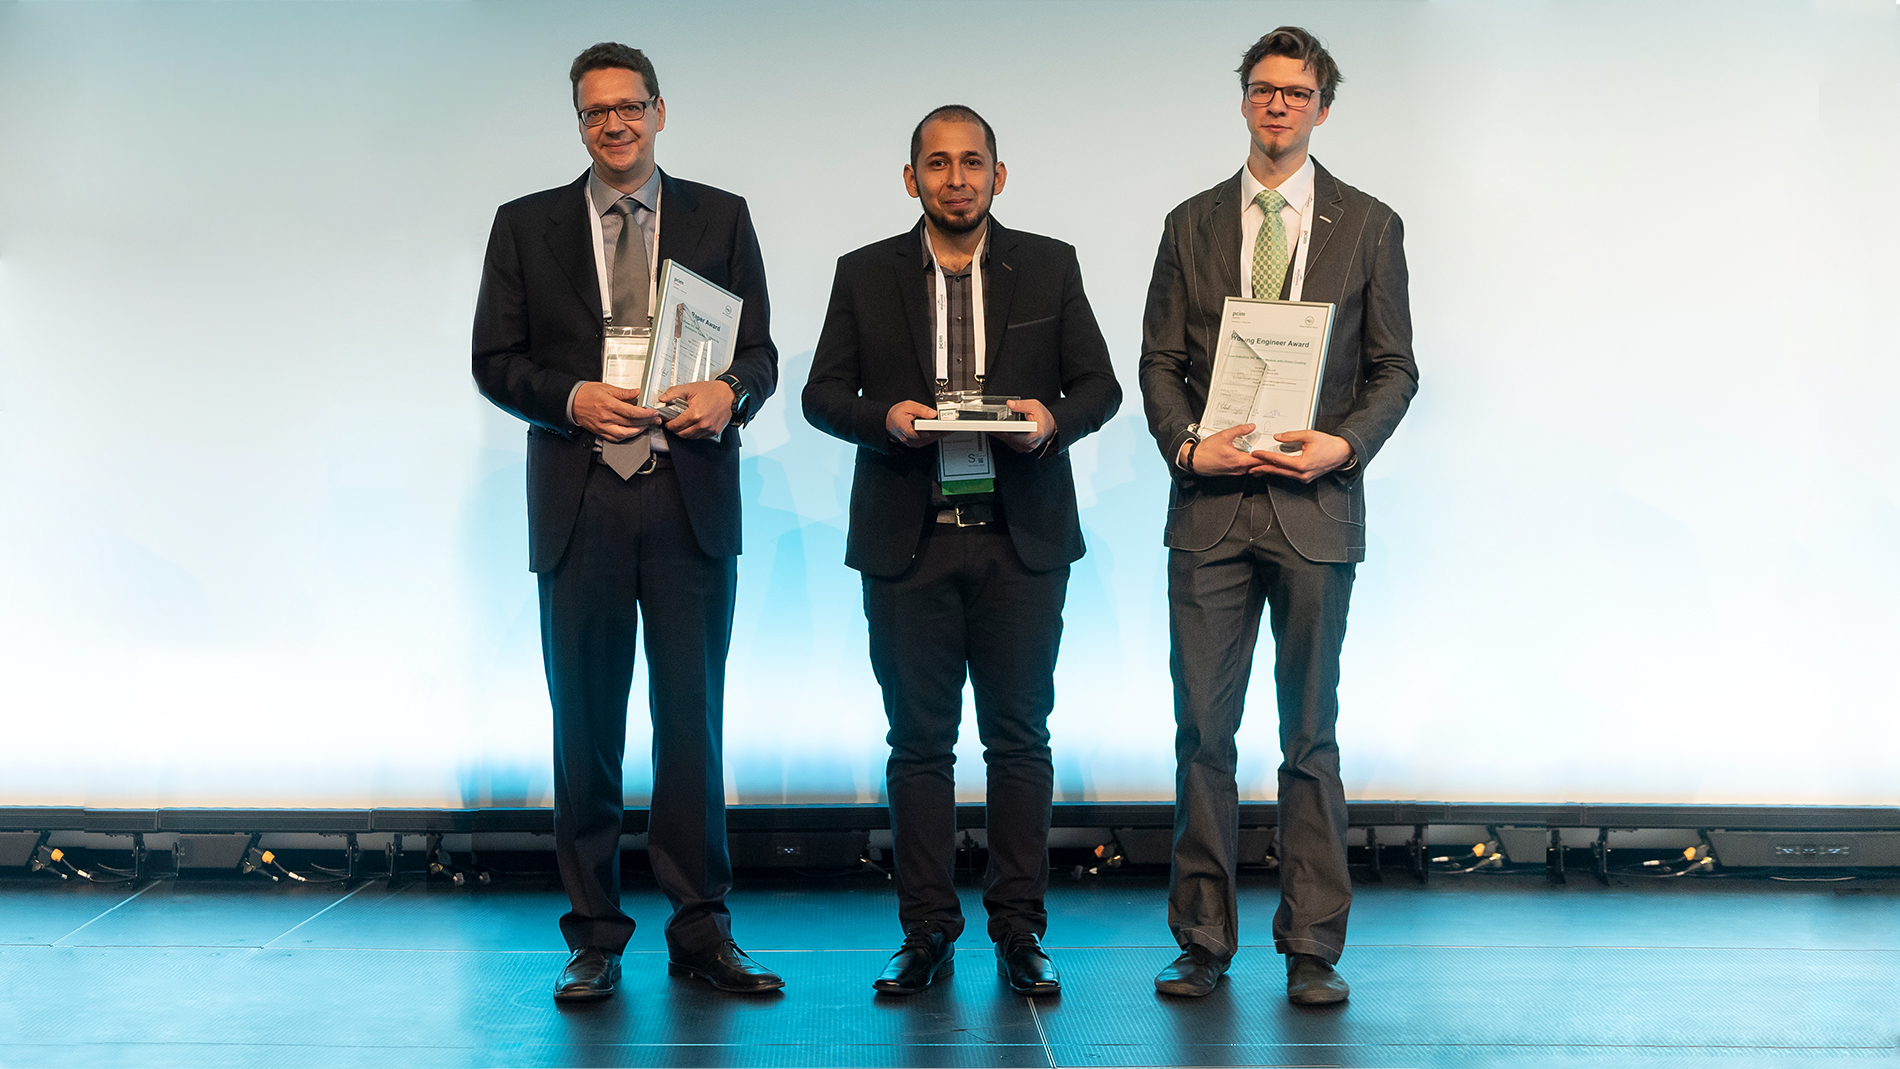 Award winners of PCIM Europe Conference 2019 announced